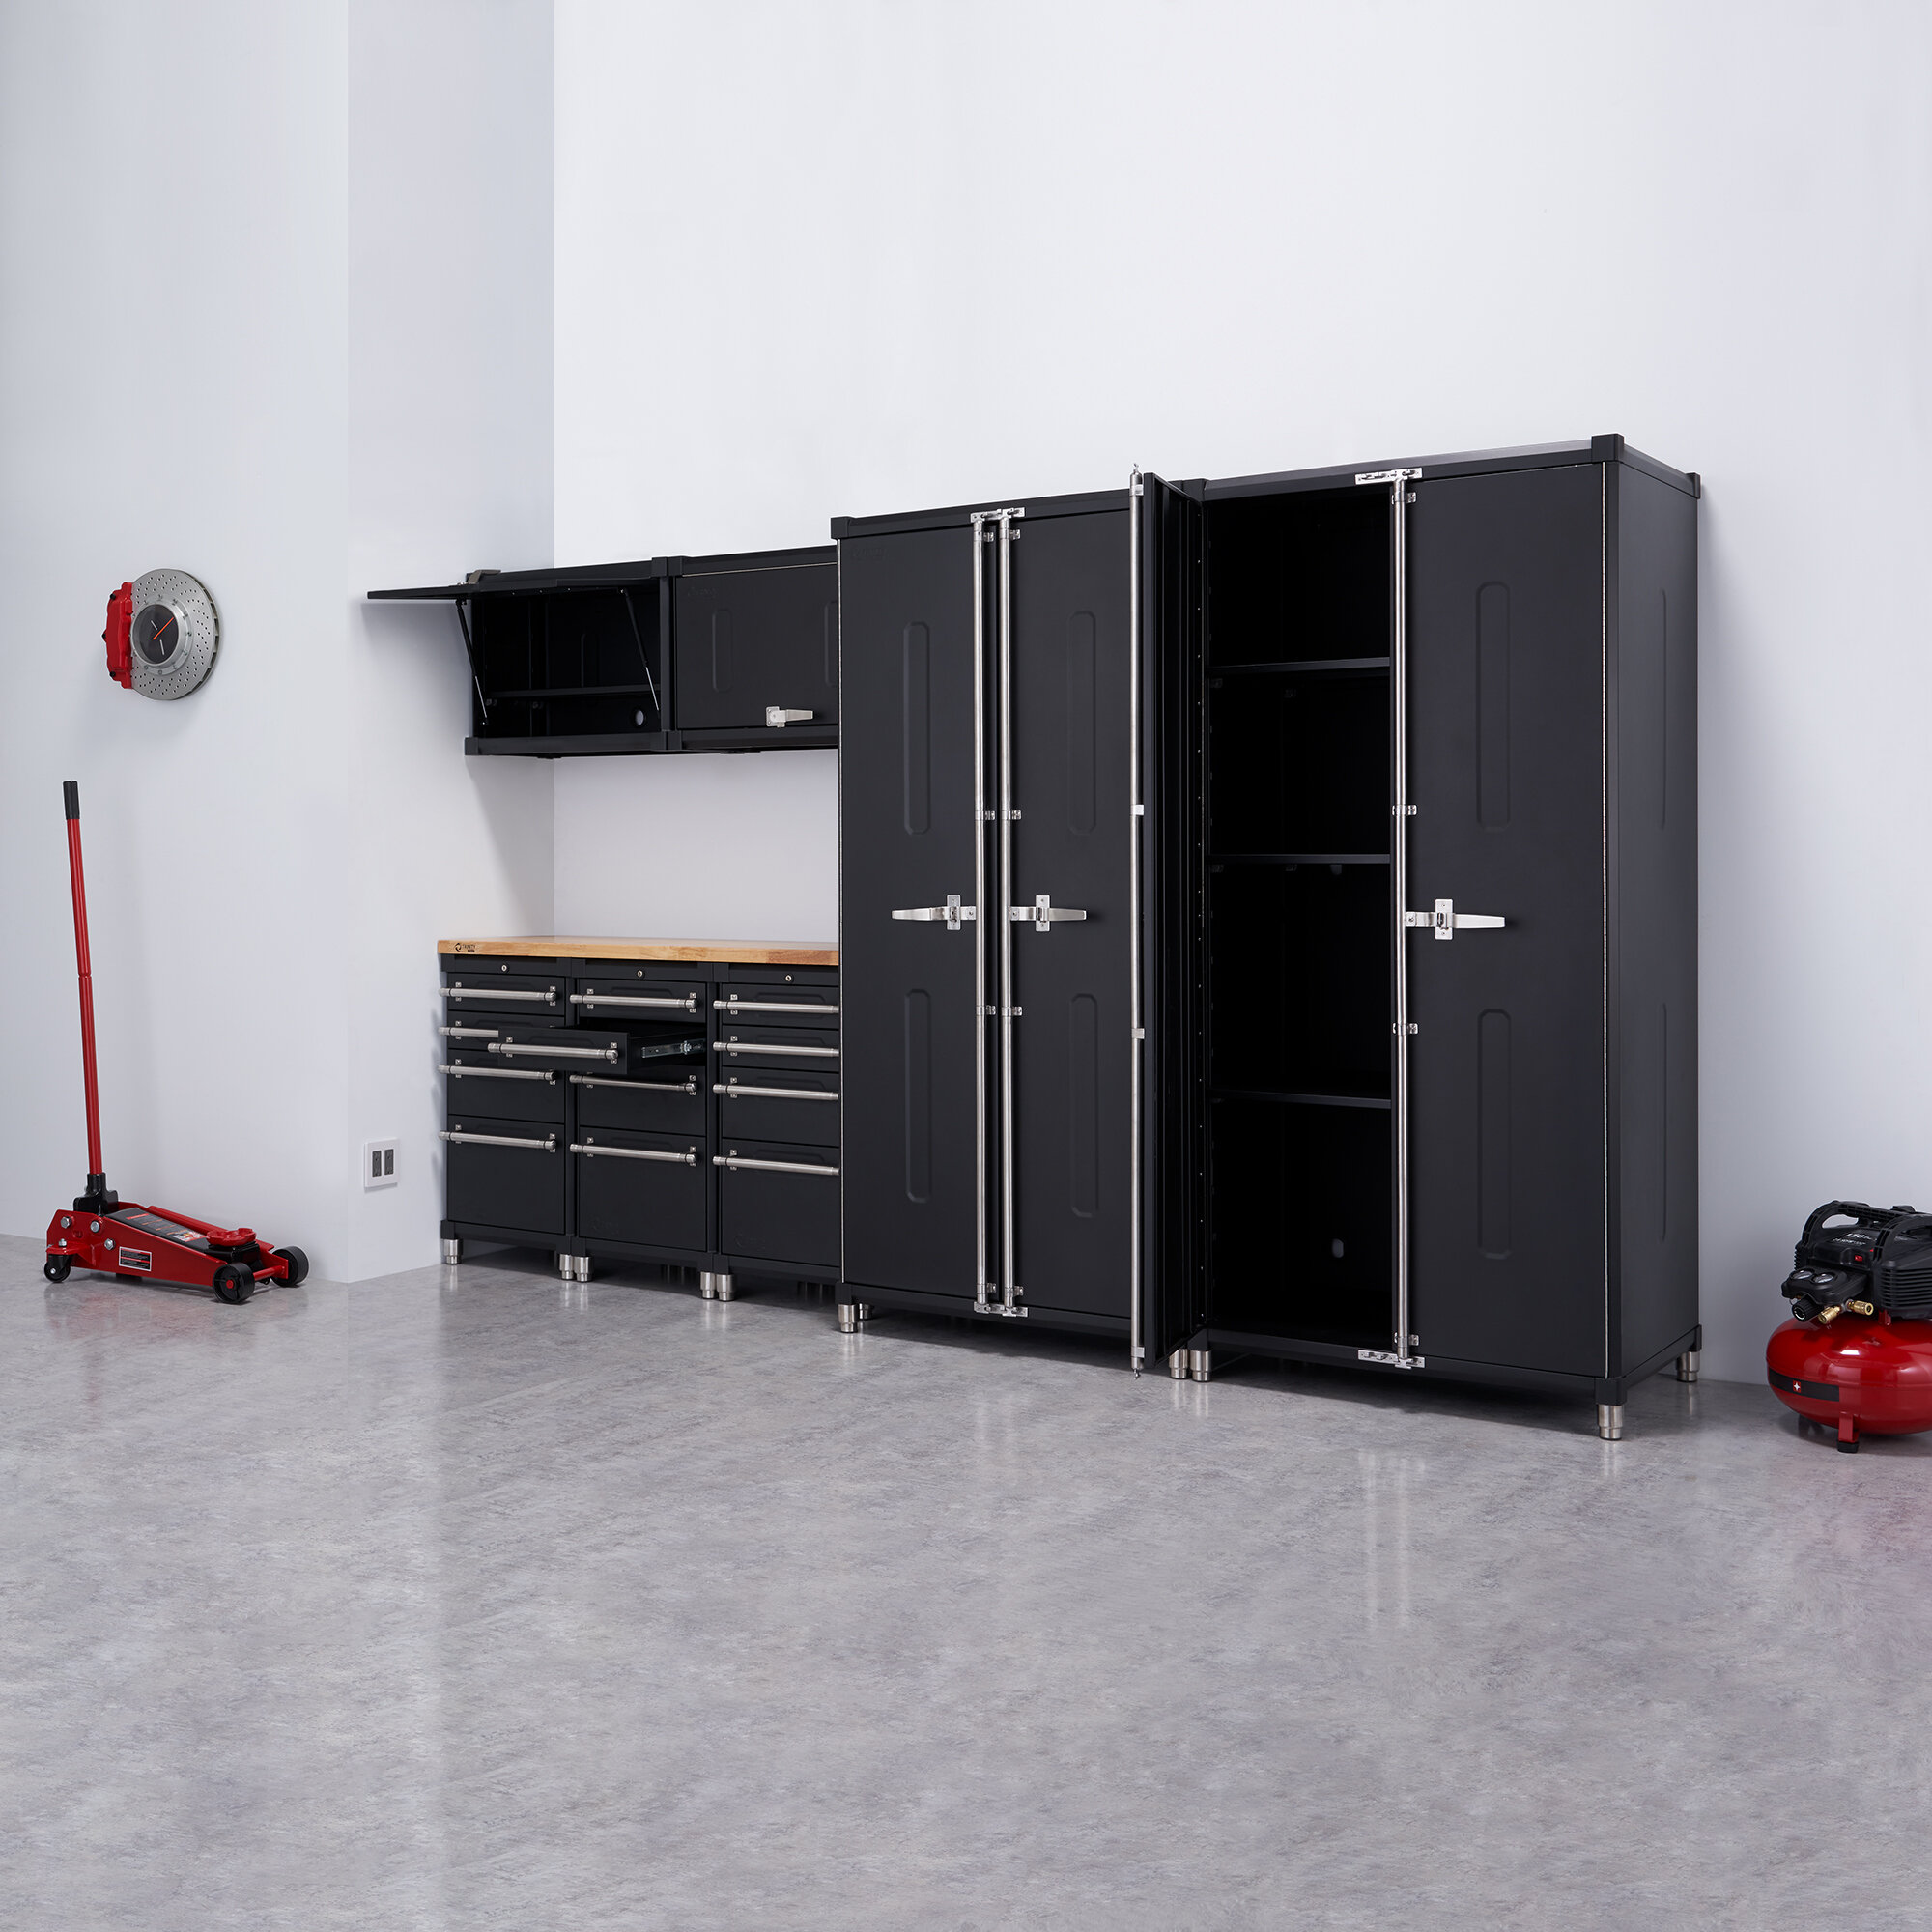 Tall Over 72 In Garage Storage Cabinets Utilities You Ll Love In 2021 Wayfair